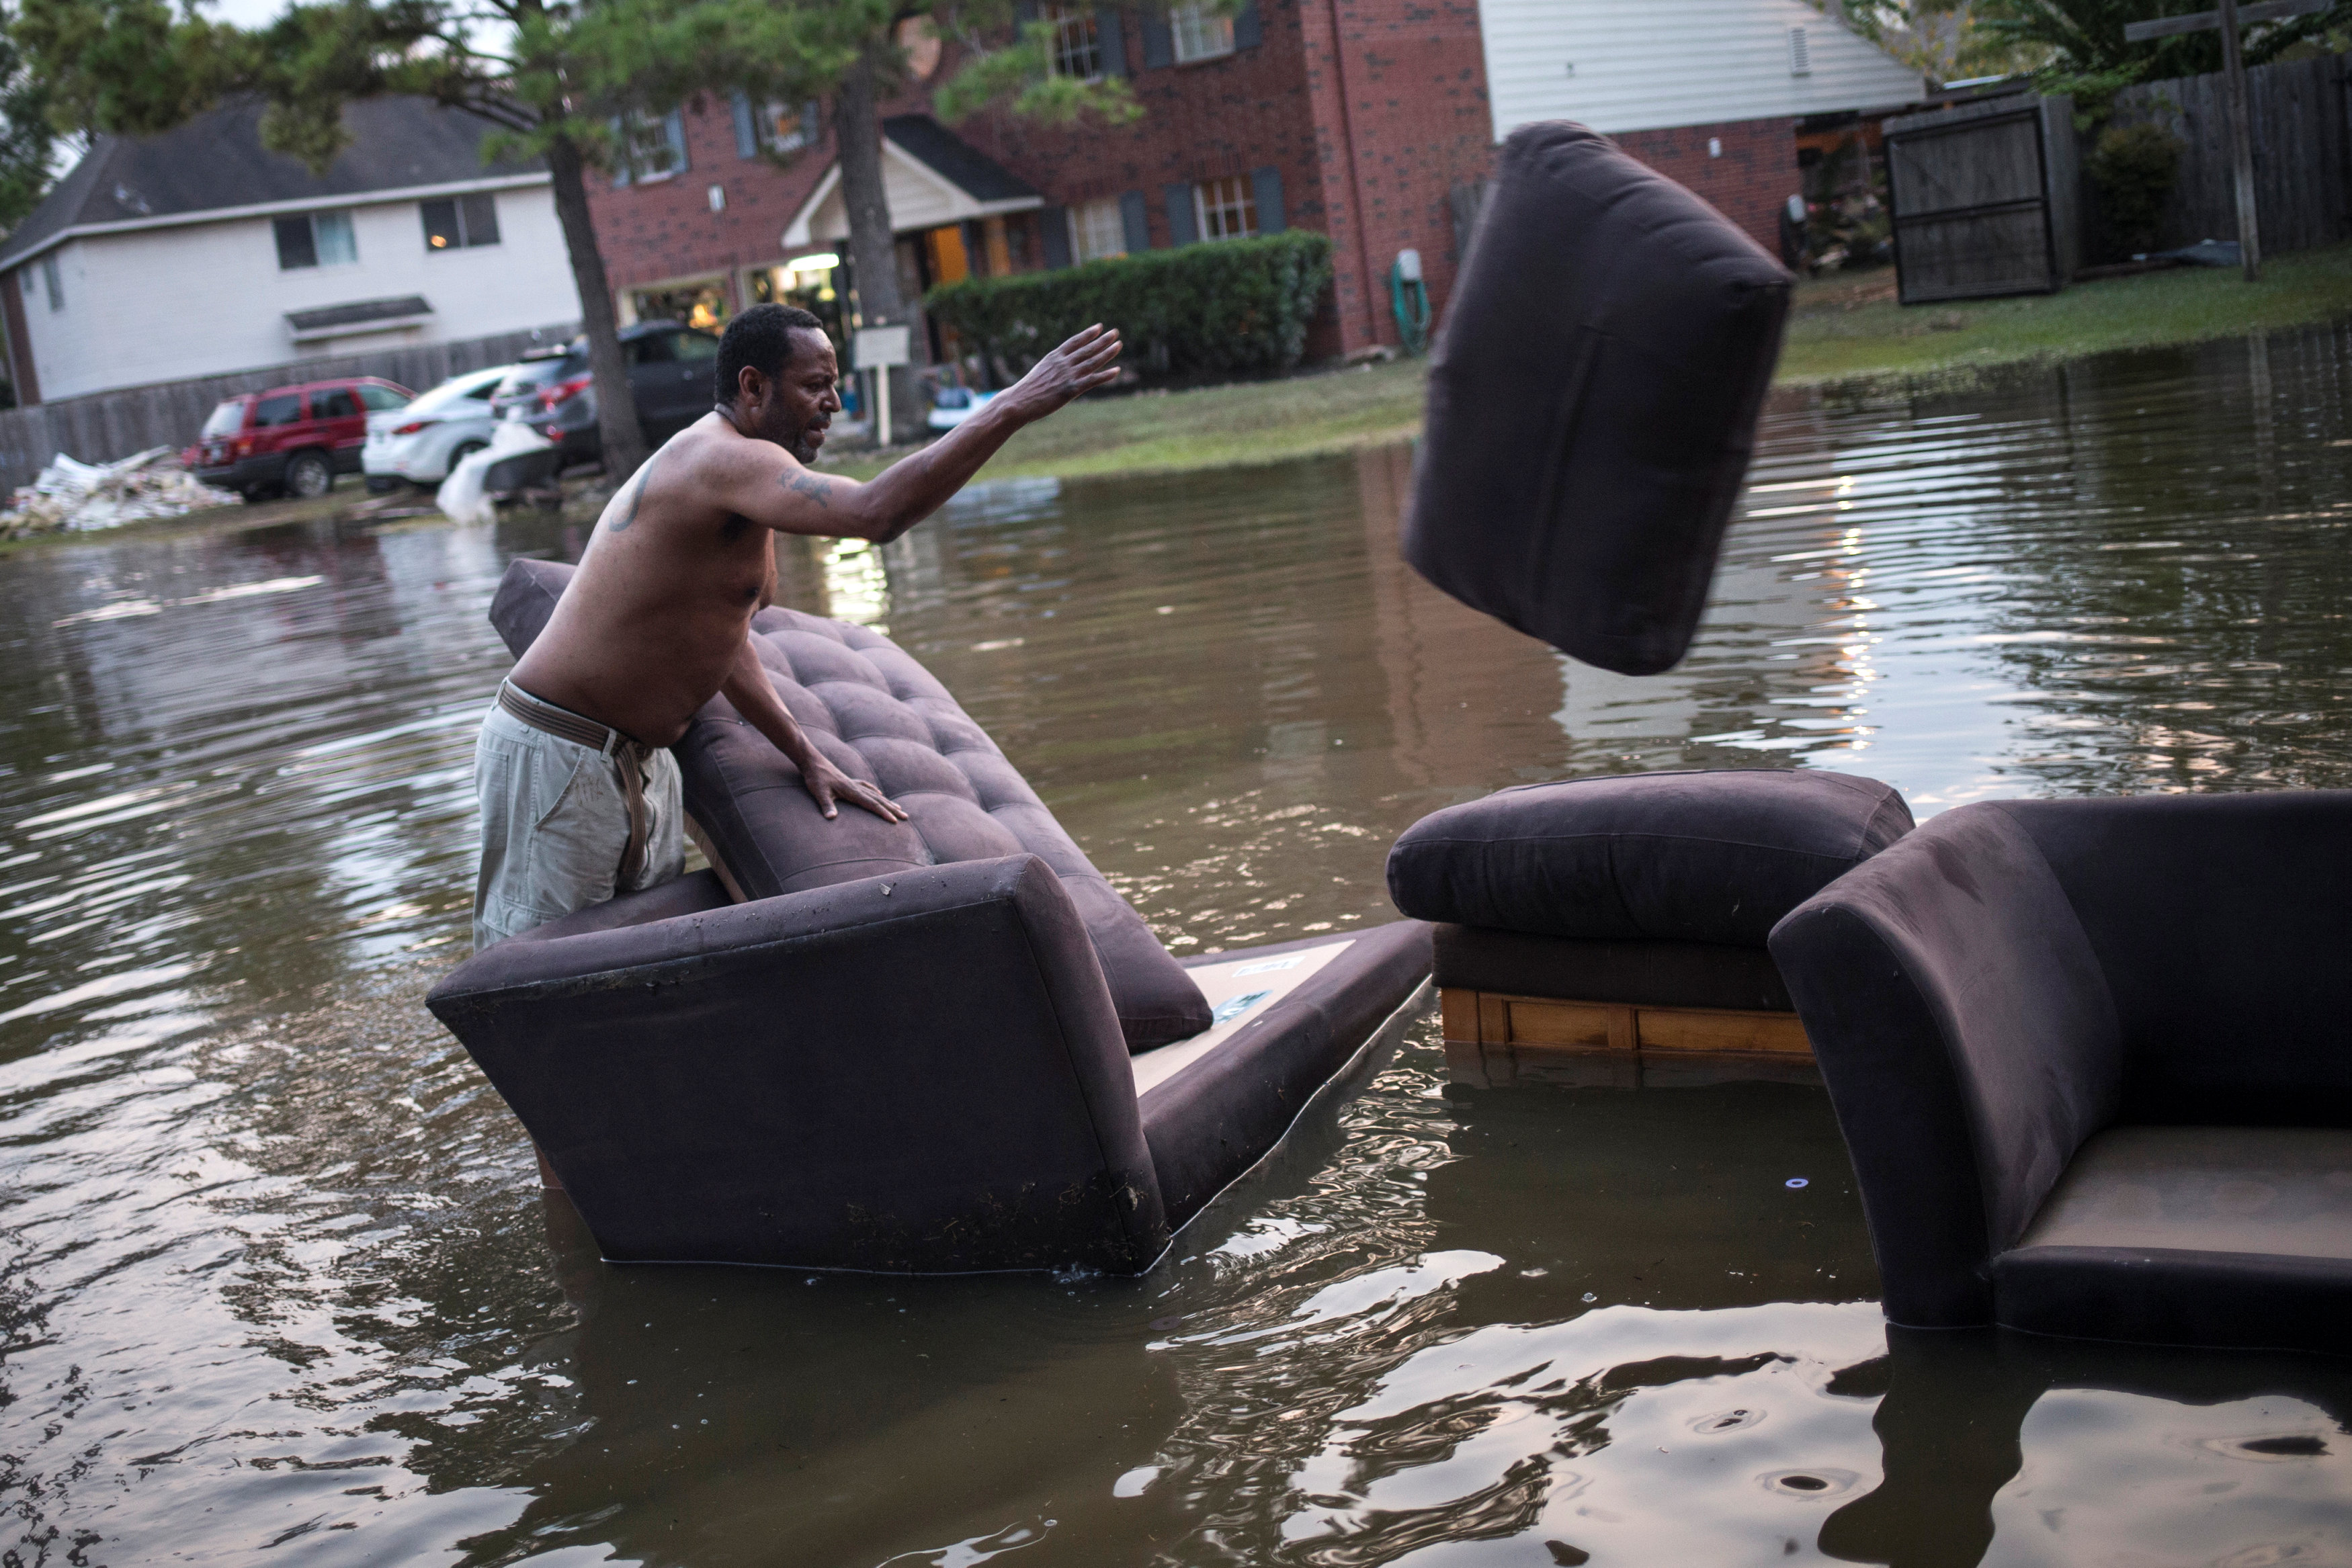 Vince Ware moves his sofas onto the sidewalk from his house which was left flooded from Tropical Storm Harvey in Houston, Texas on Sept. 3, 2017. (REUTERS/Adrees Latif)